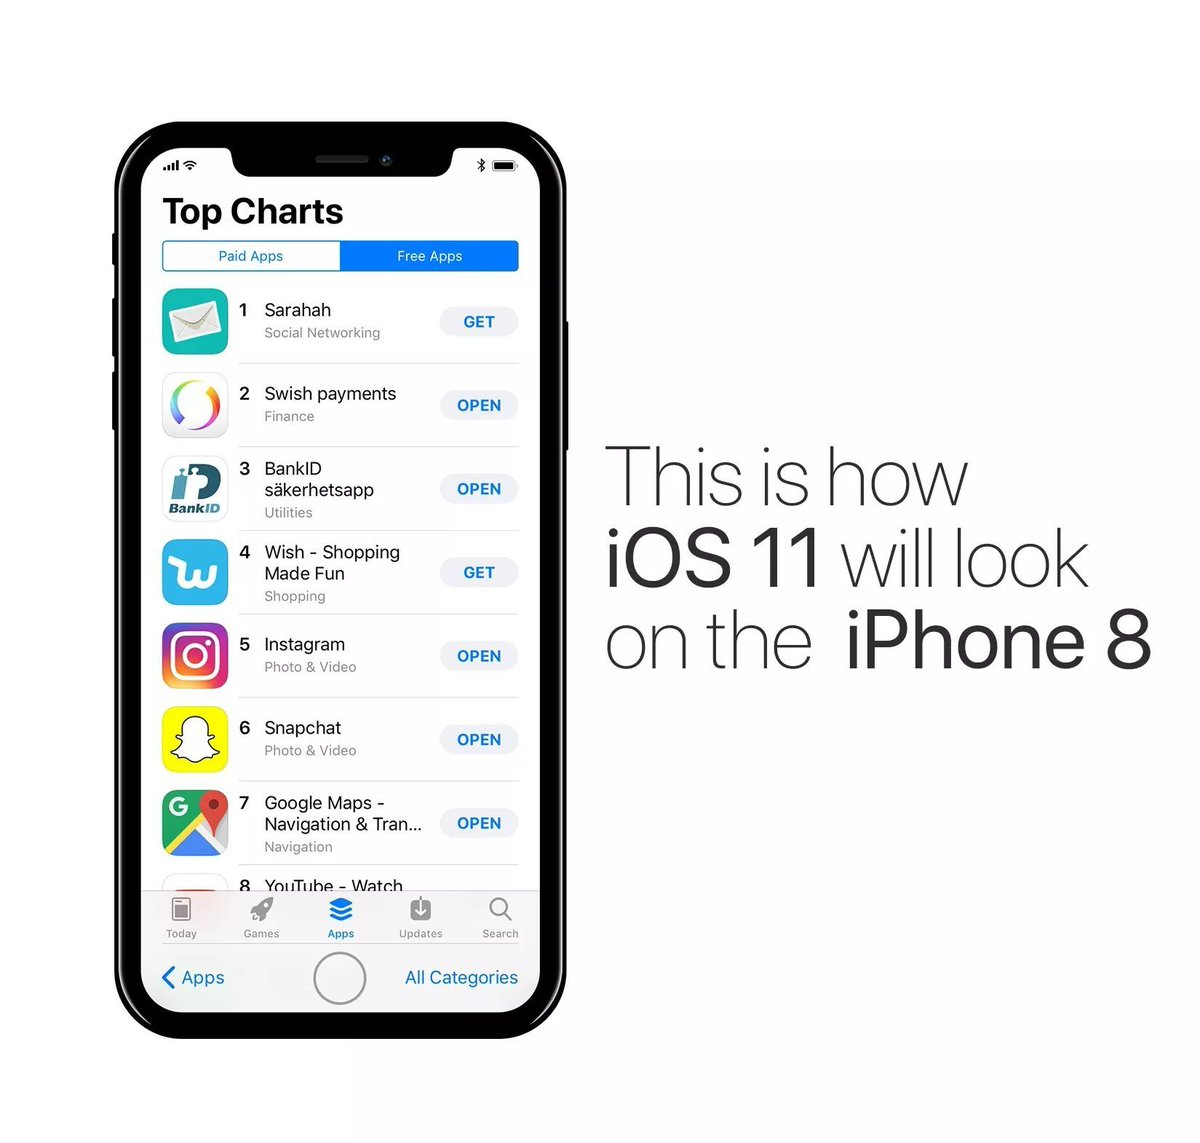 *goosebumps*   #iphone #iphone8 #ios #ios11 #freeiphone #likeme #iphonegiveaway #iosupdate<br>http://pic.twitter.com/7Ivx834ggY